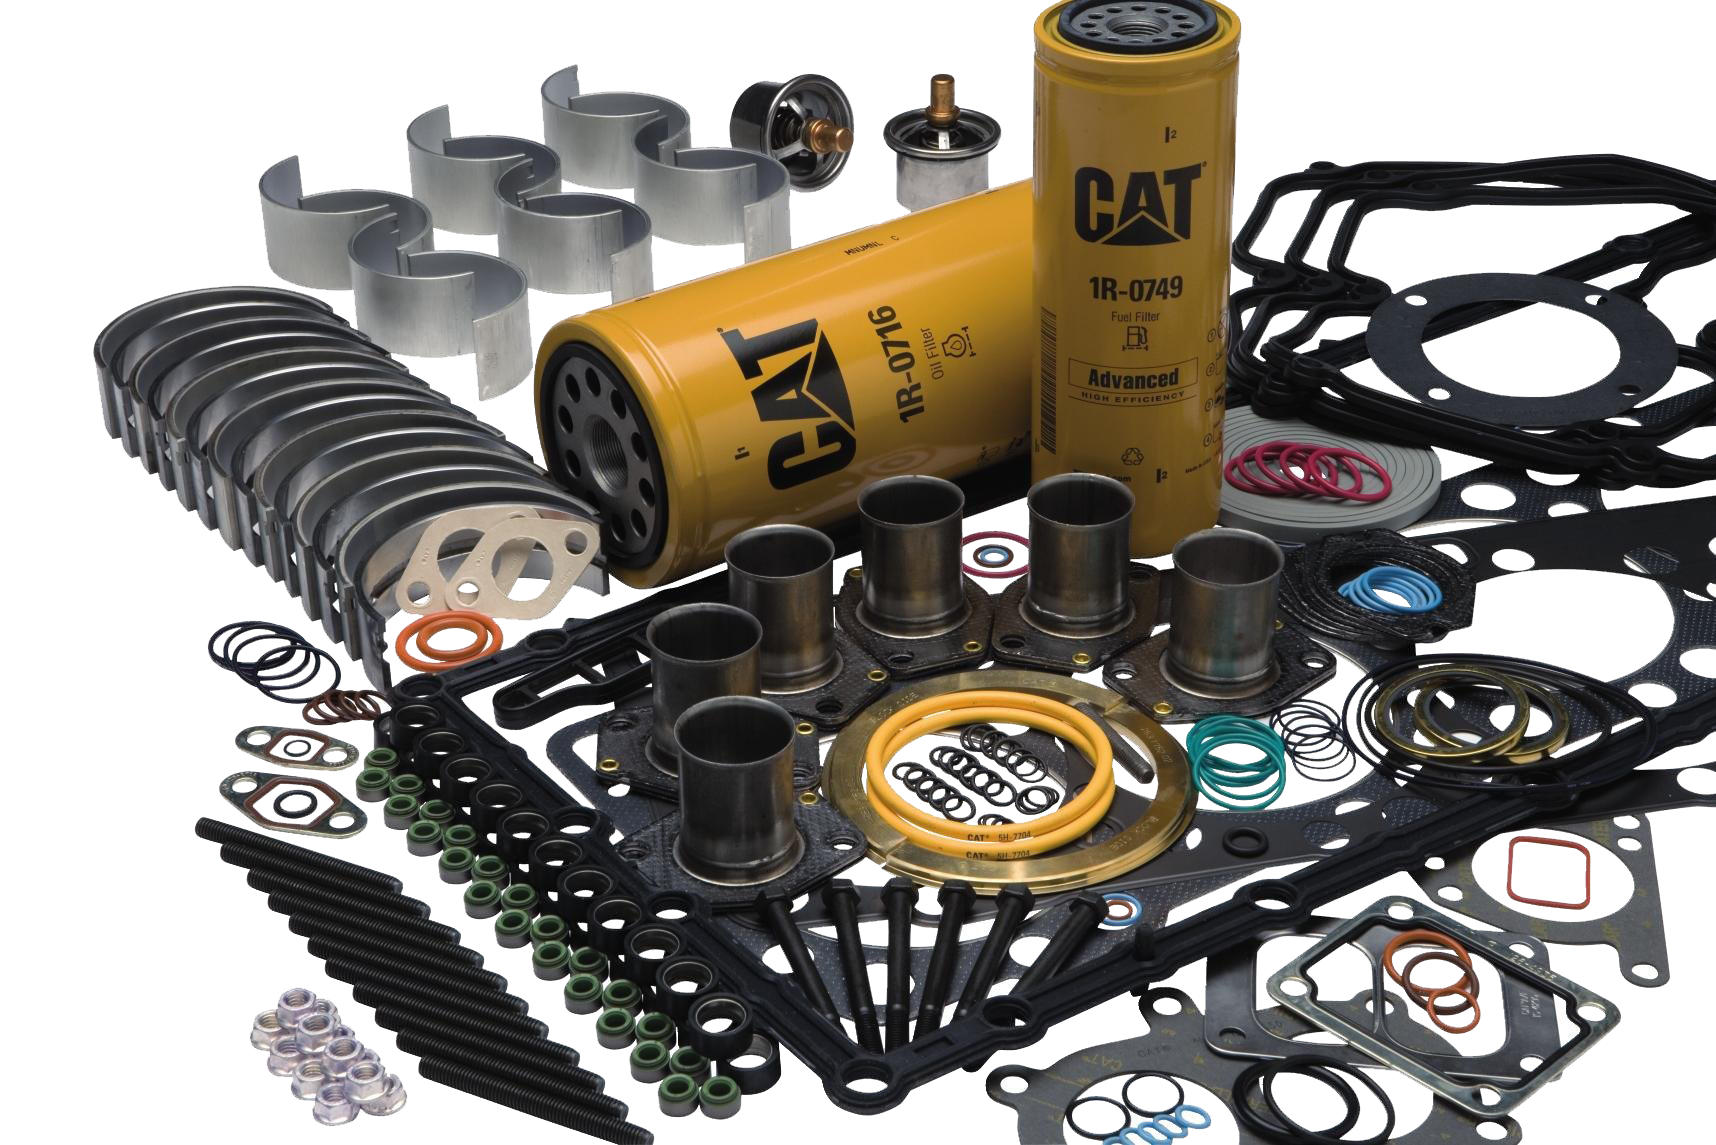 Caterpillar Engine Parts : Strm technical society of repair machines and tractors